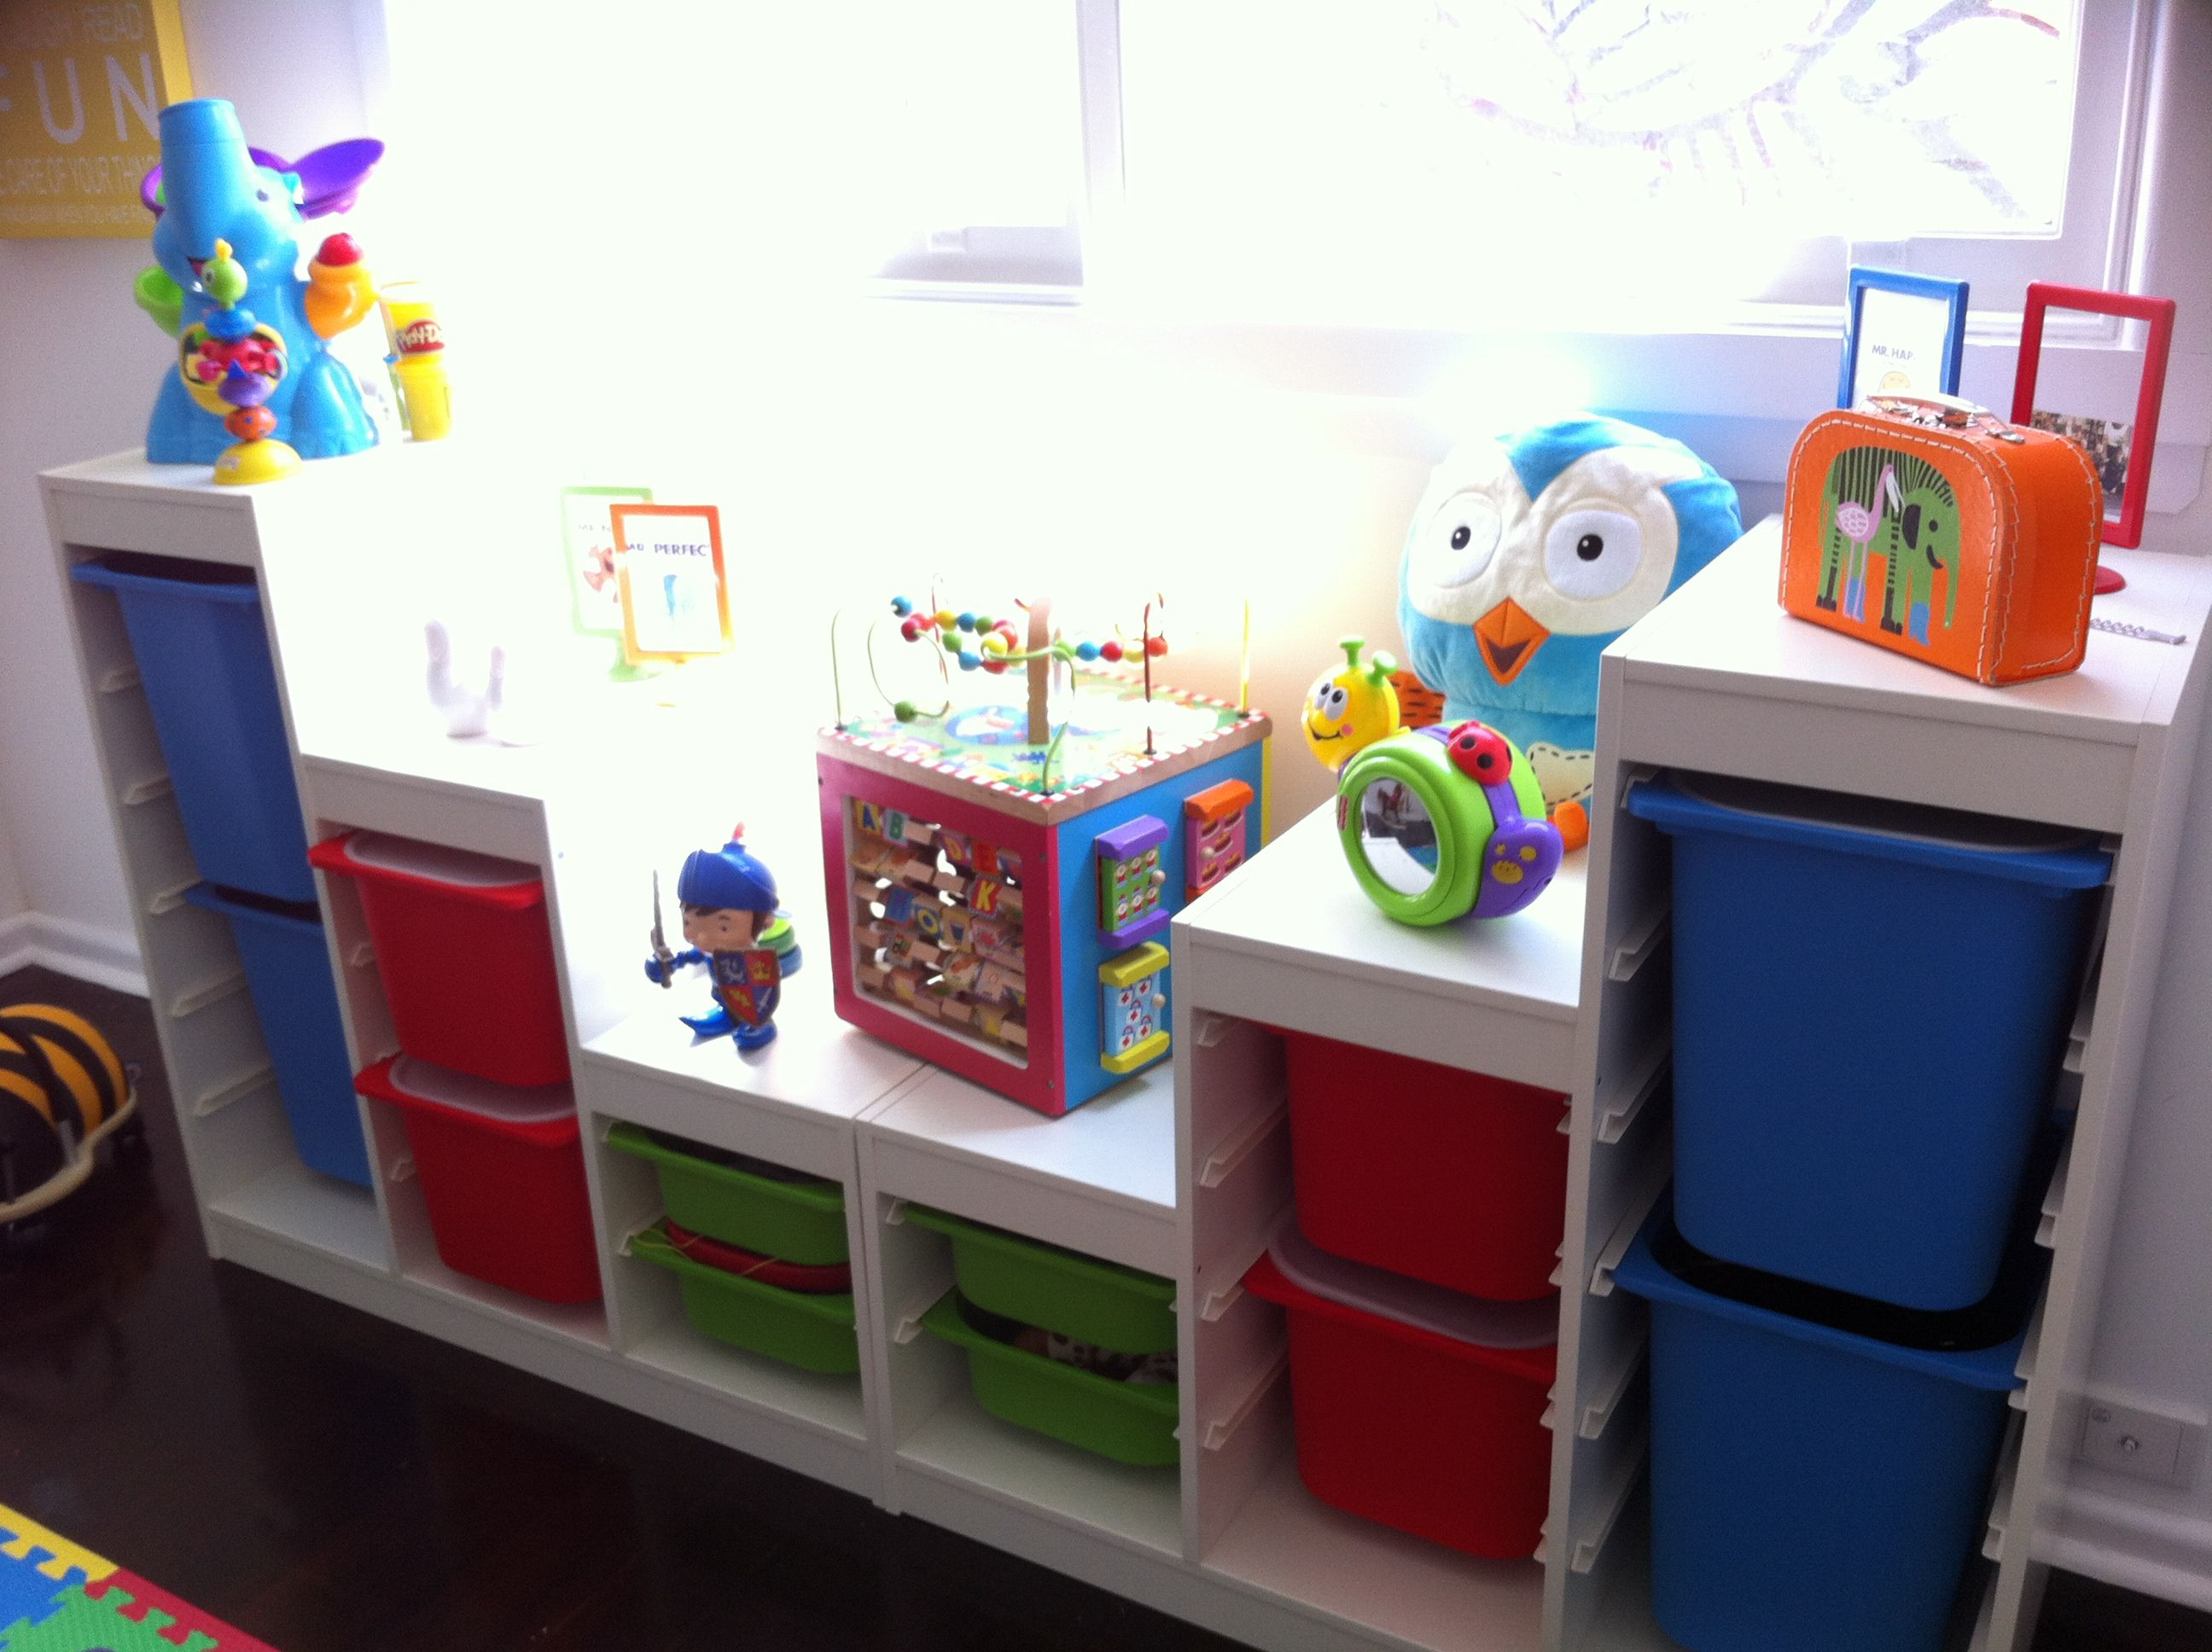 Captivating Unique 17 Ikea Playroom Ideas 2592x1936 Storage Solutions For Room Designs  Design Ideas